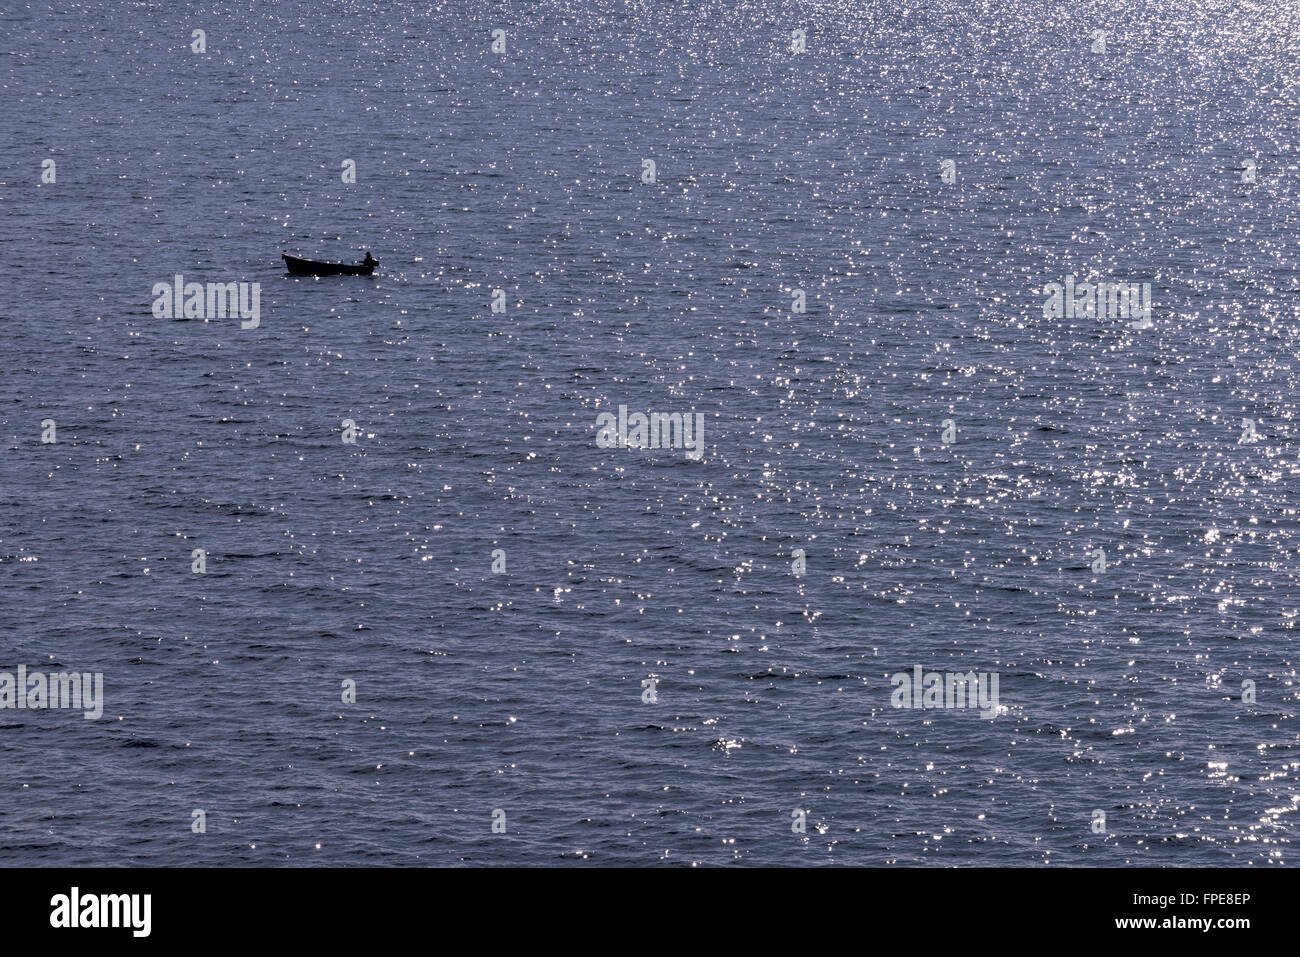 A lone fisherman on a sparkling Adriatic Sea, near Dubrovnik, Croatia. - Stock Image